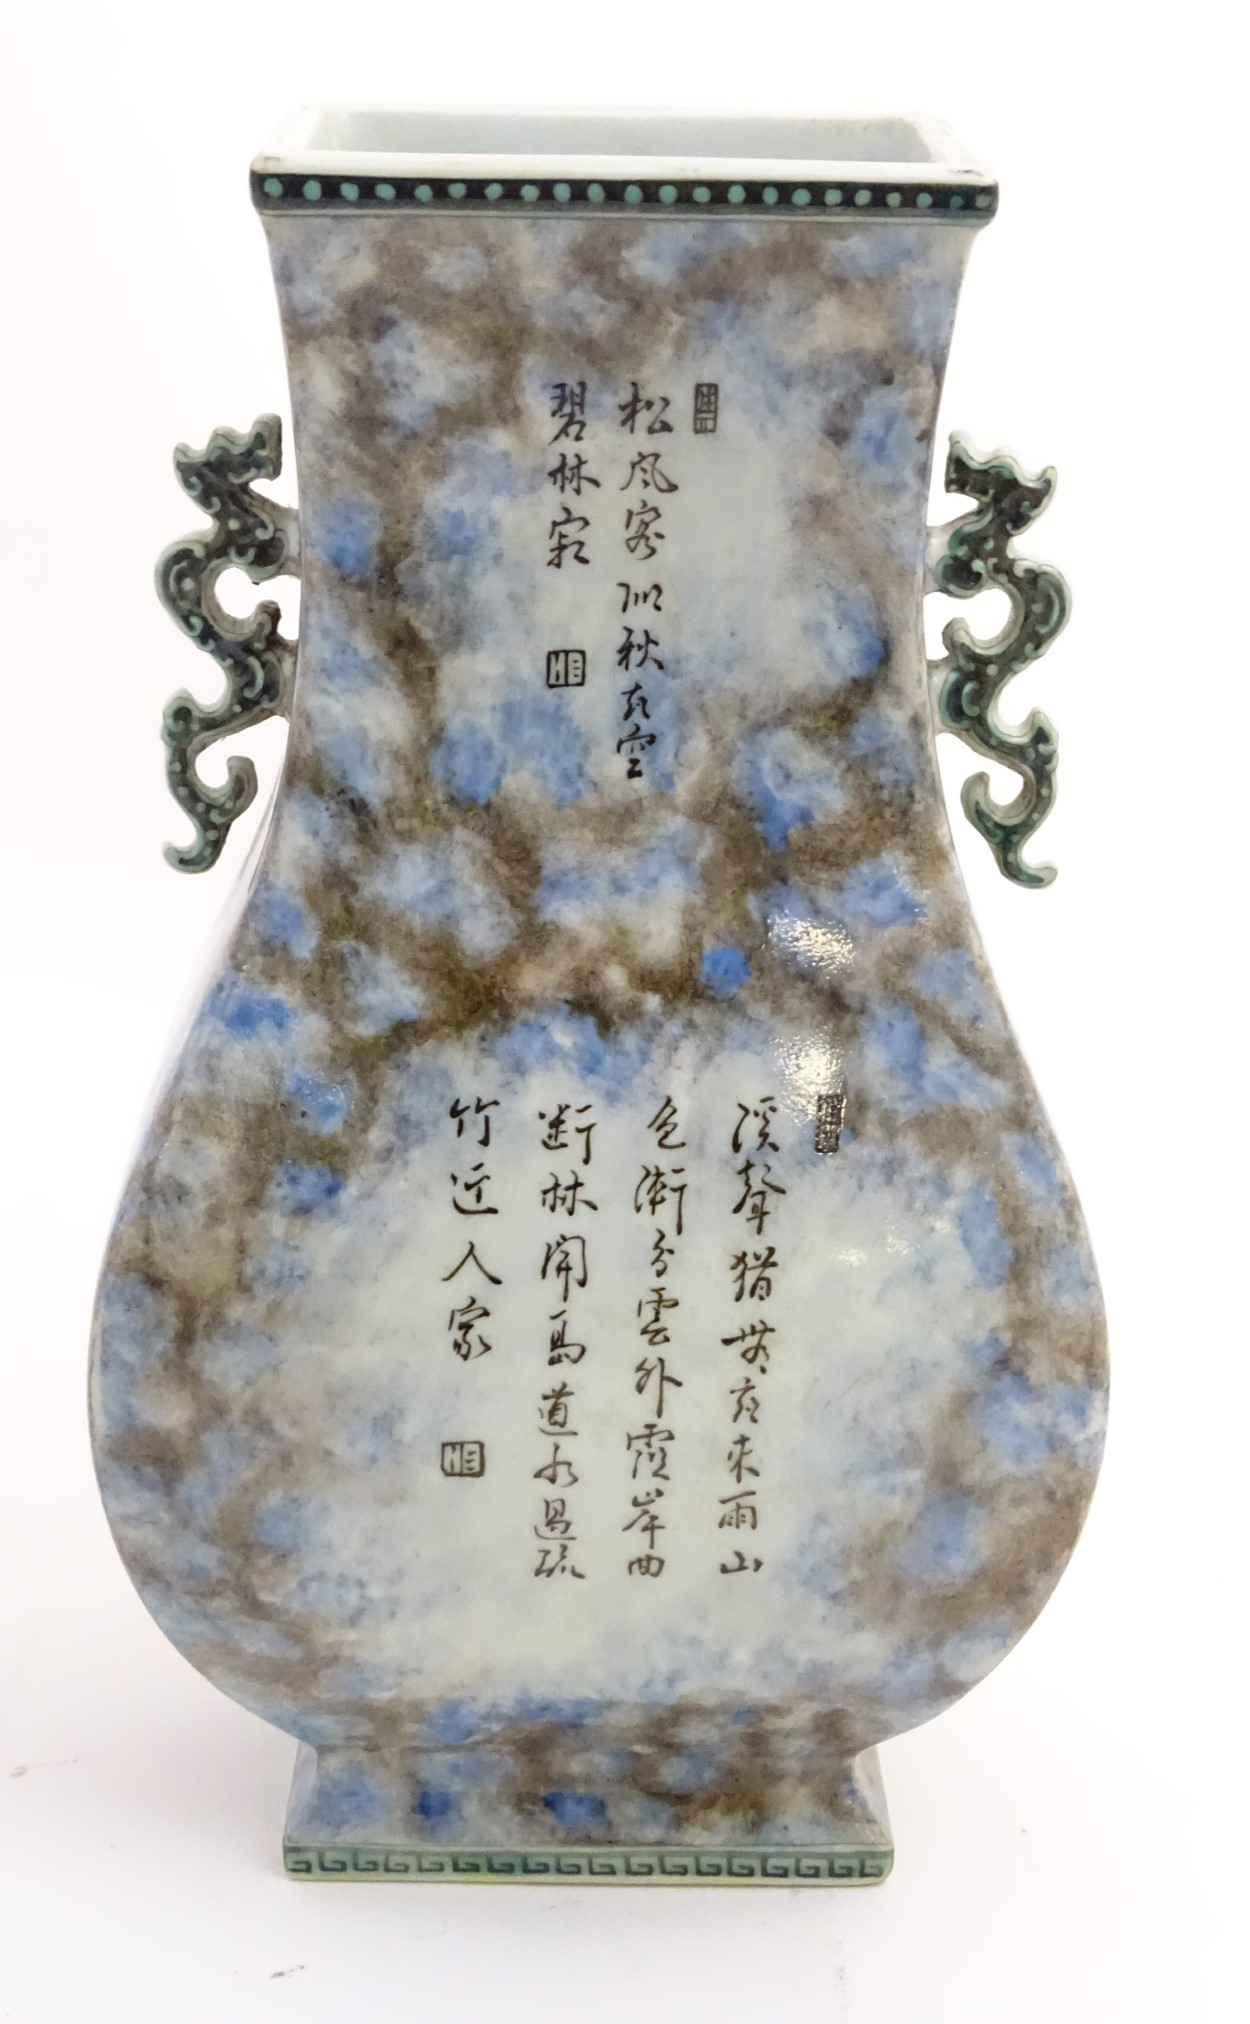 Lot 2 - A Chinese fanghu vase with a mottled blue and grey ground and Chinese character decoration,